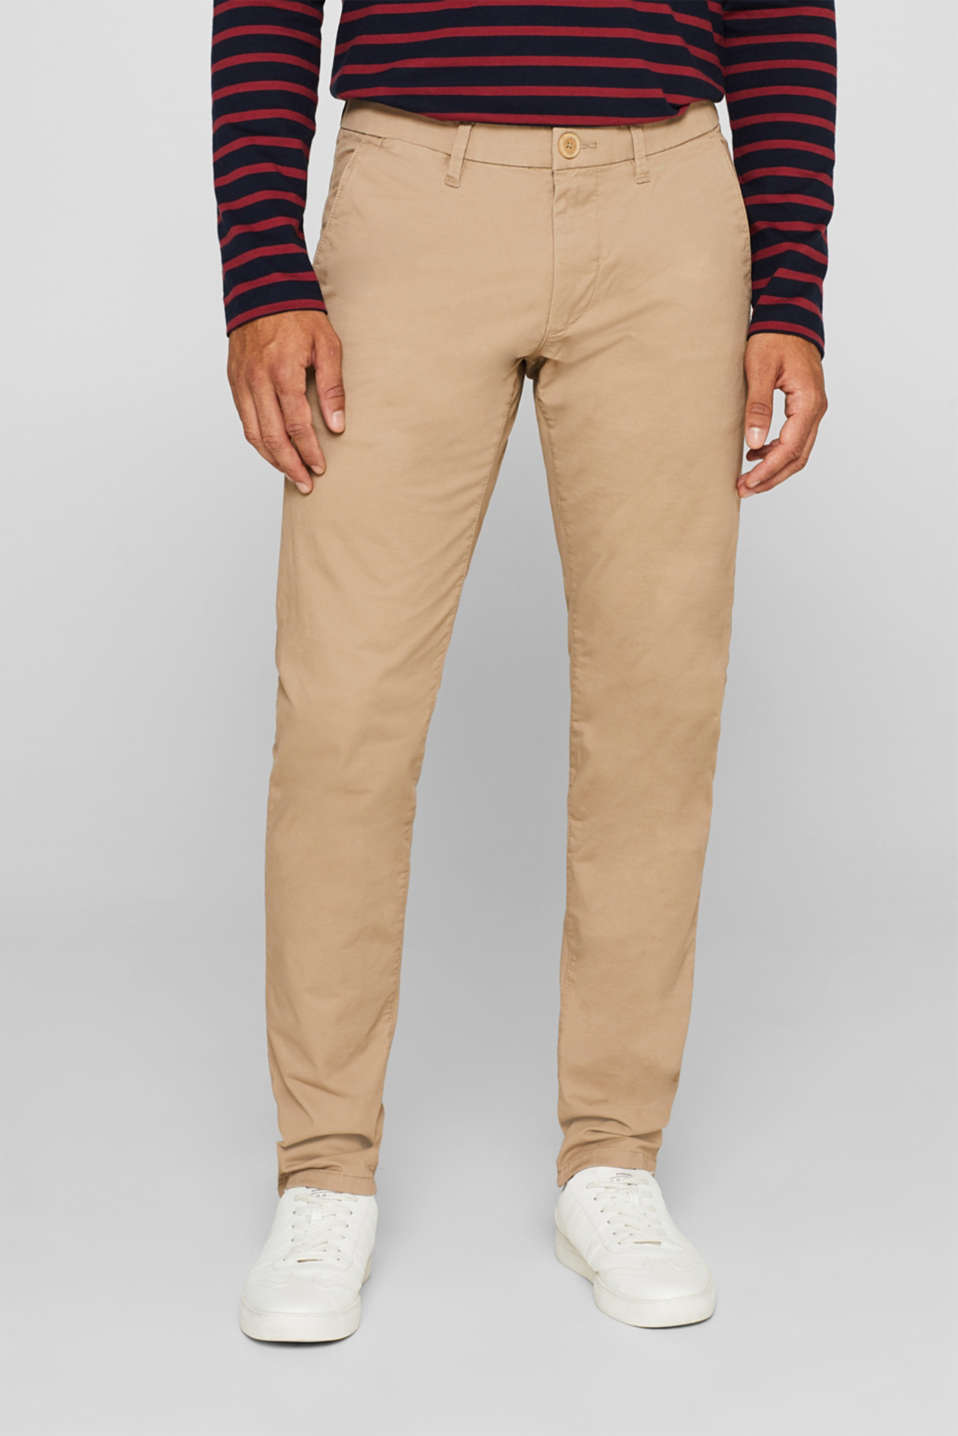 Esprit - Five pocket trousers made of stretch cotton